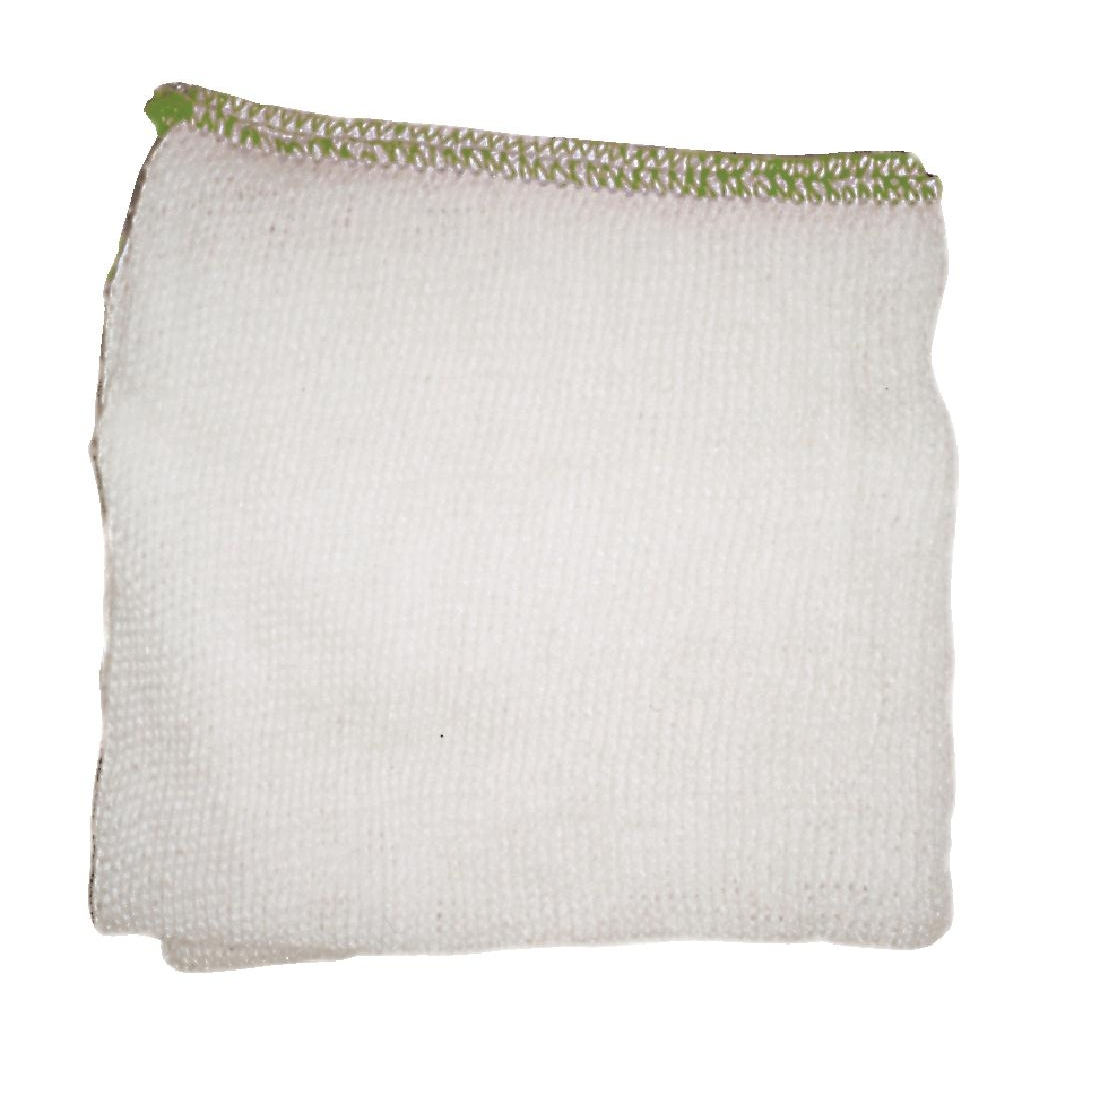 Jantex Dish Cloths Green